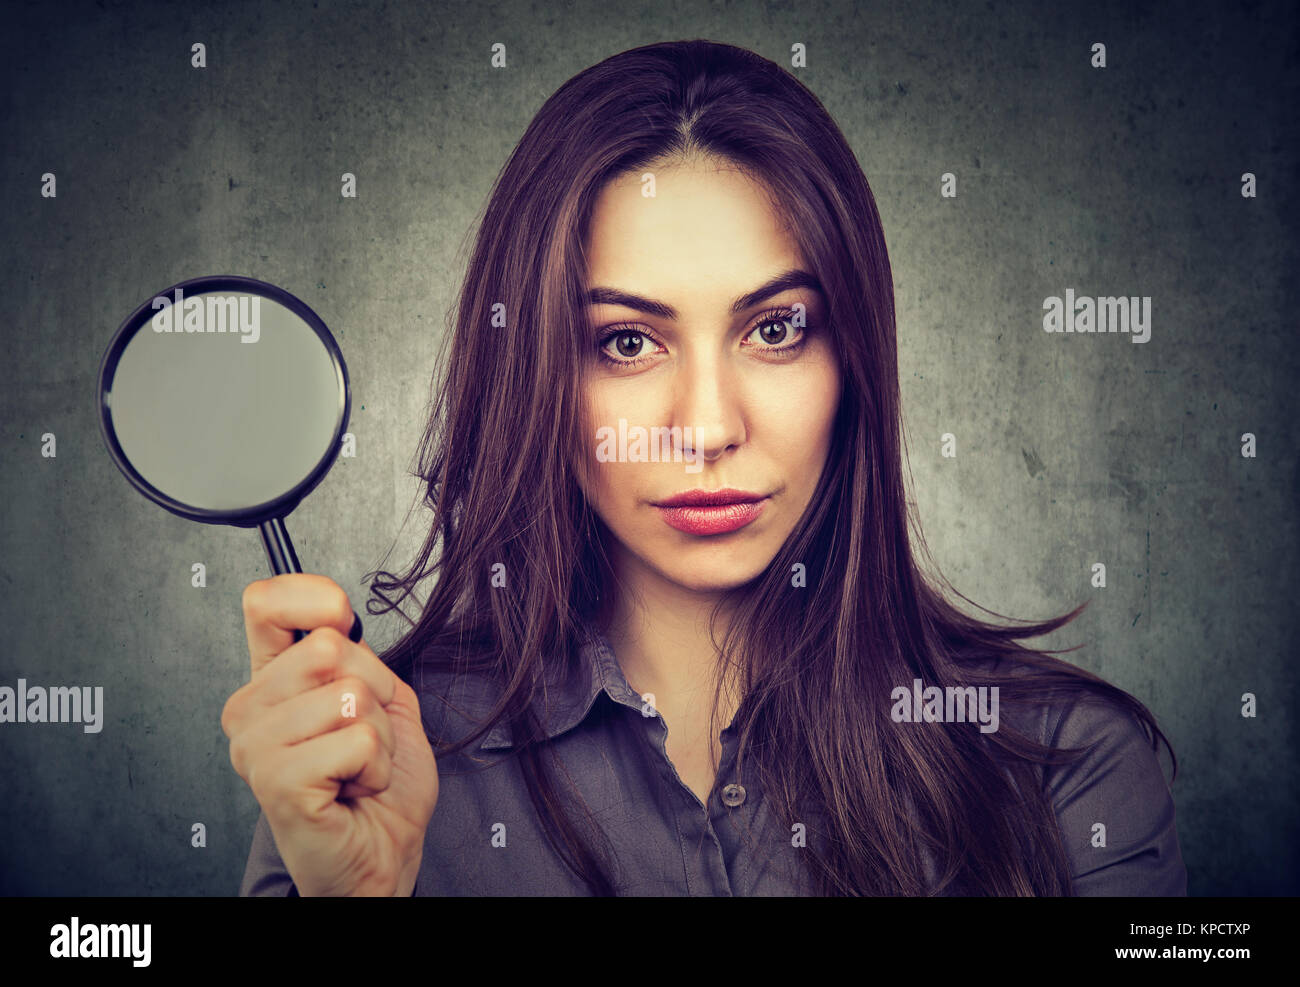 Young determined model holding magnifier and looking seriously at camera. Stock Photo